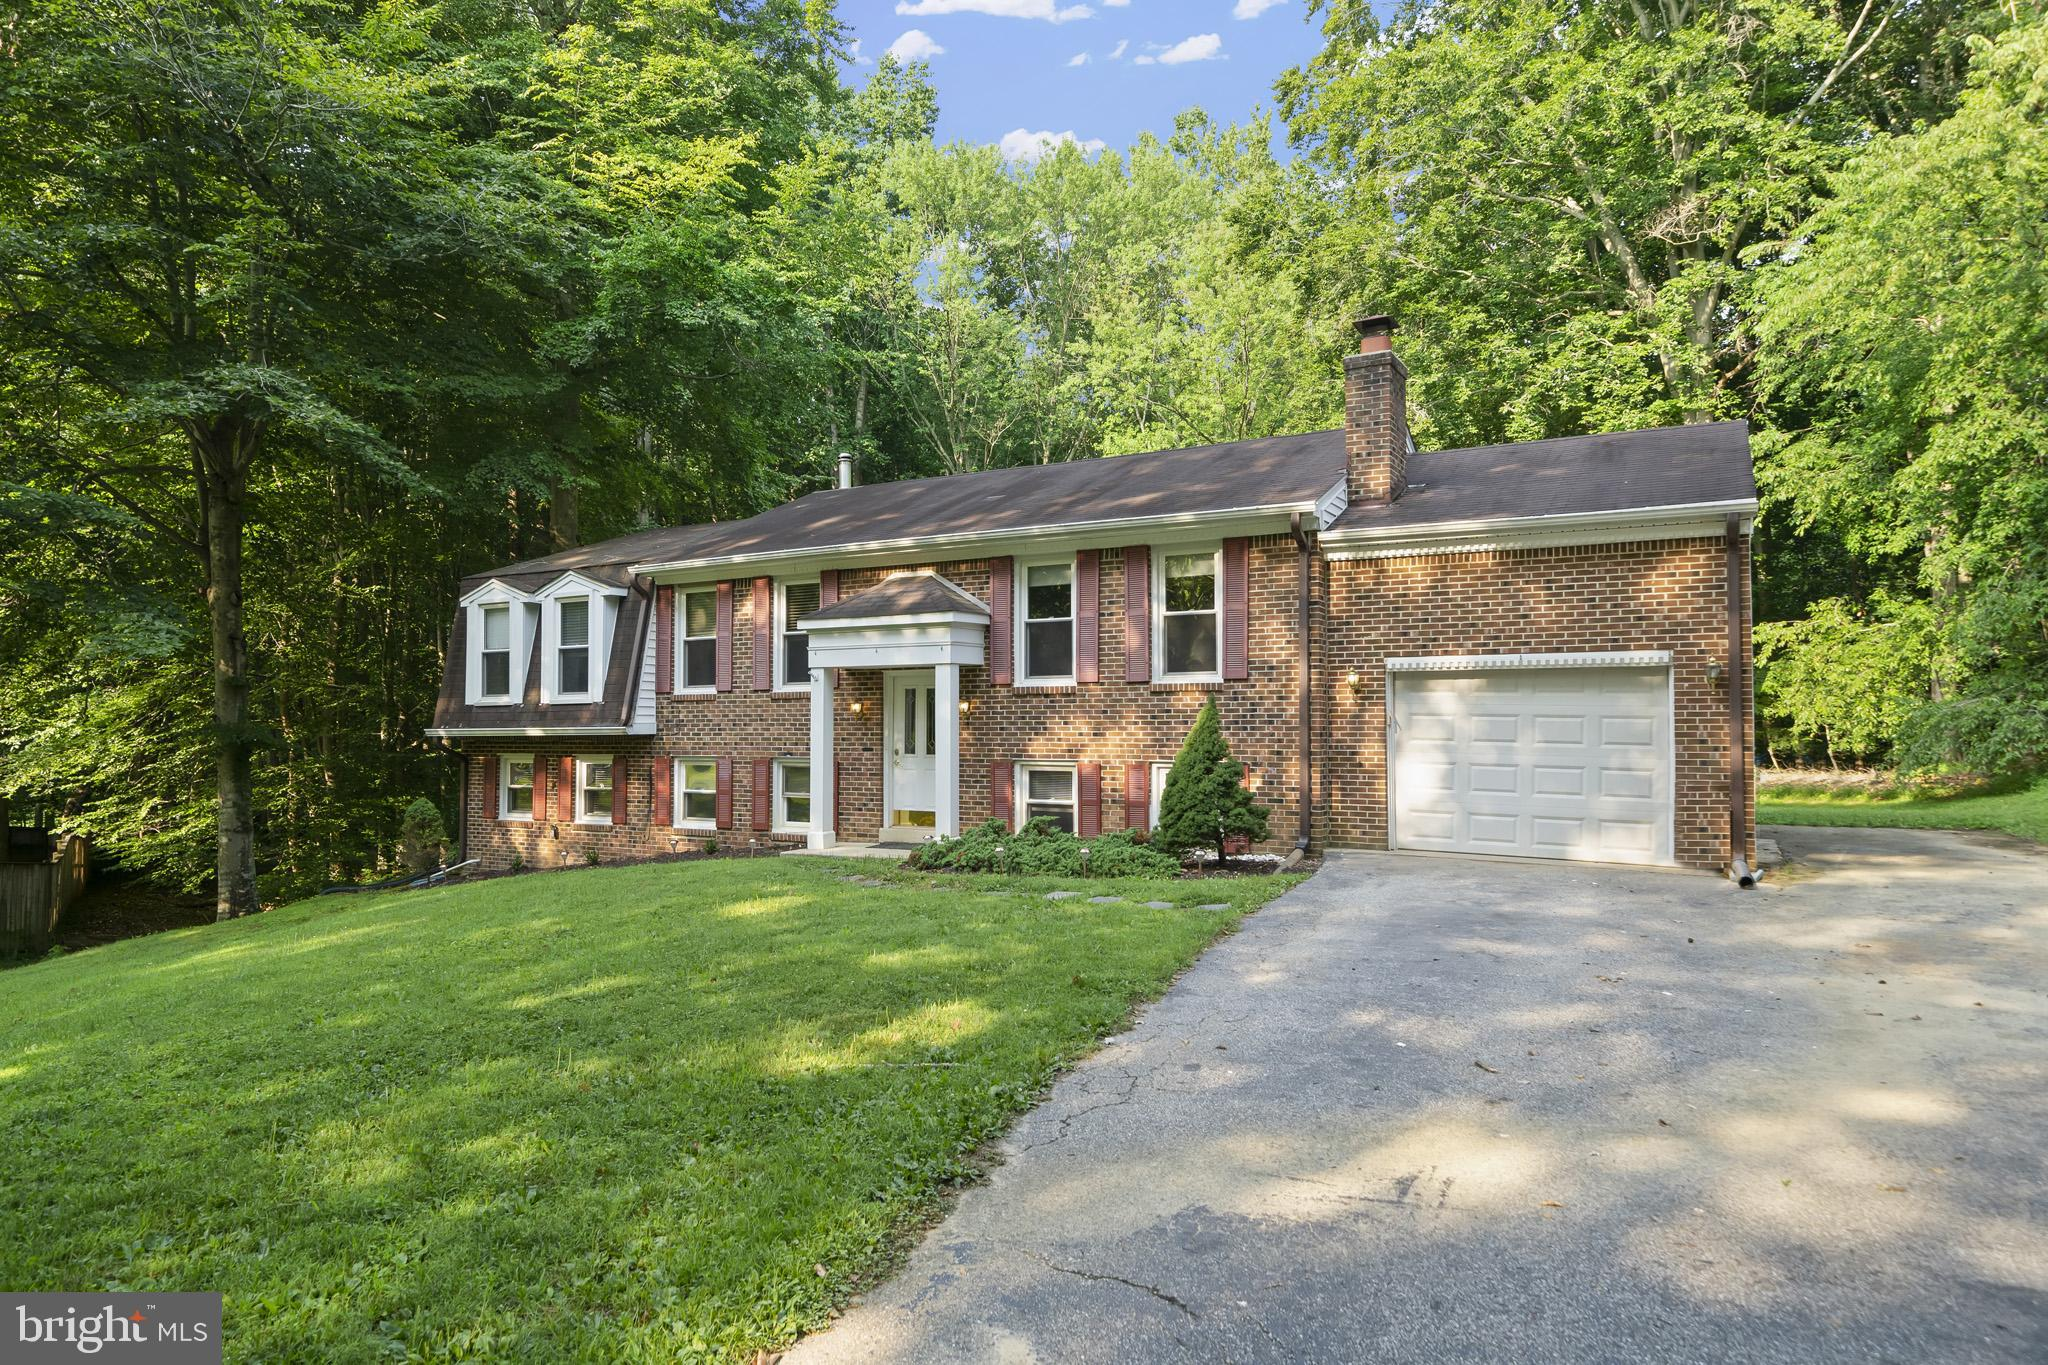 Location Location Location!!! Plenty of room to spread out in this spacious brick front beauty. Upst